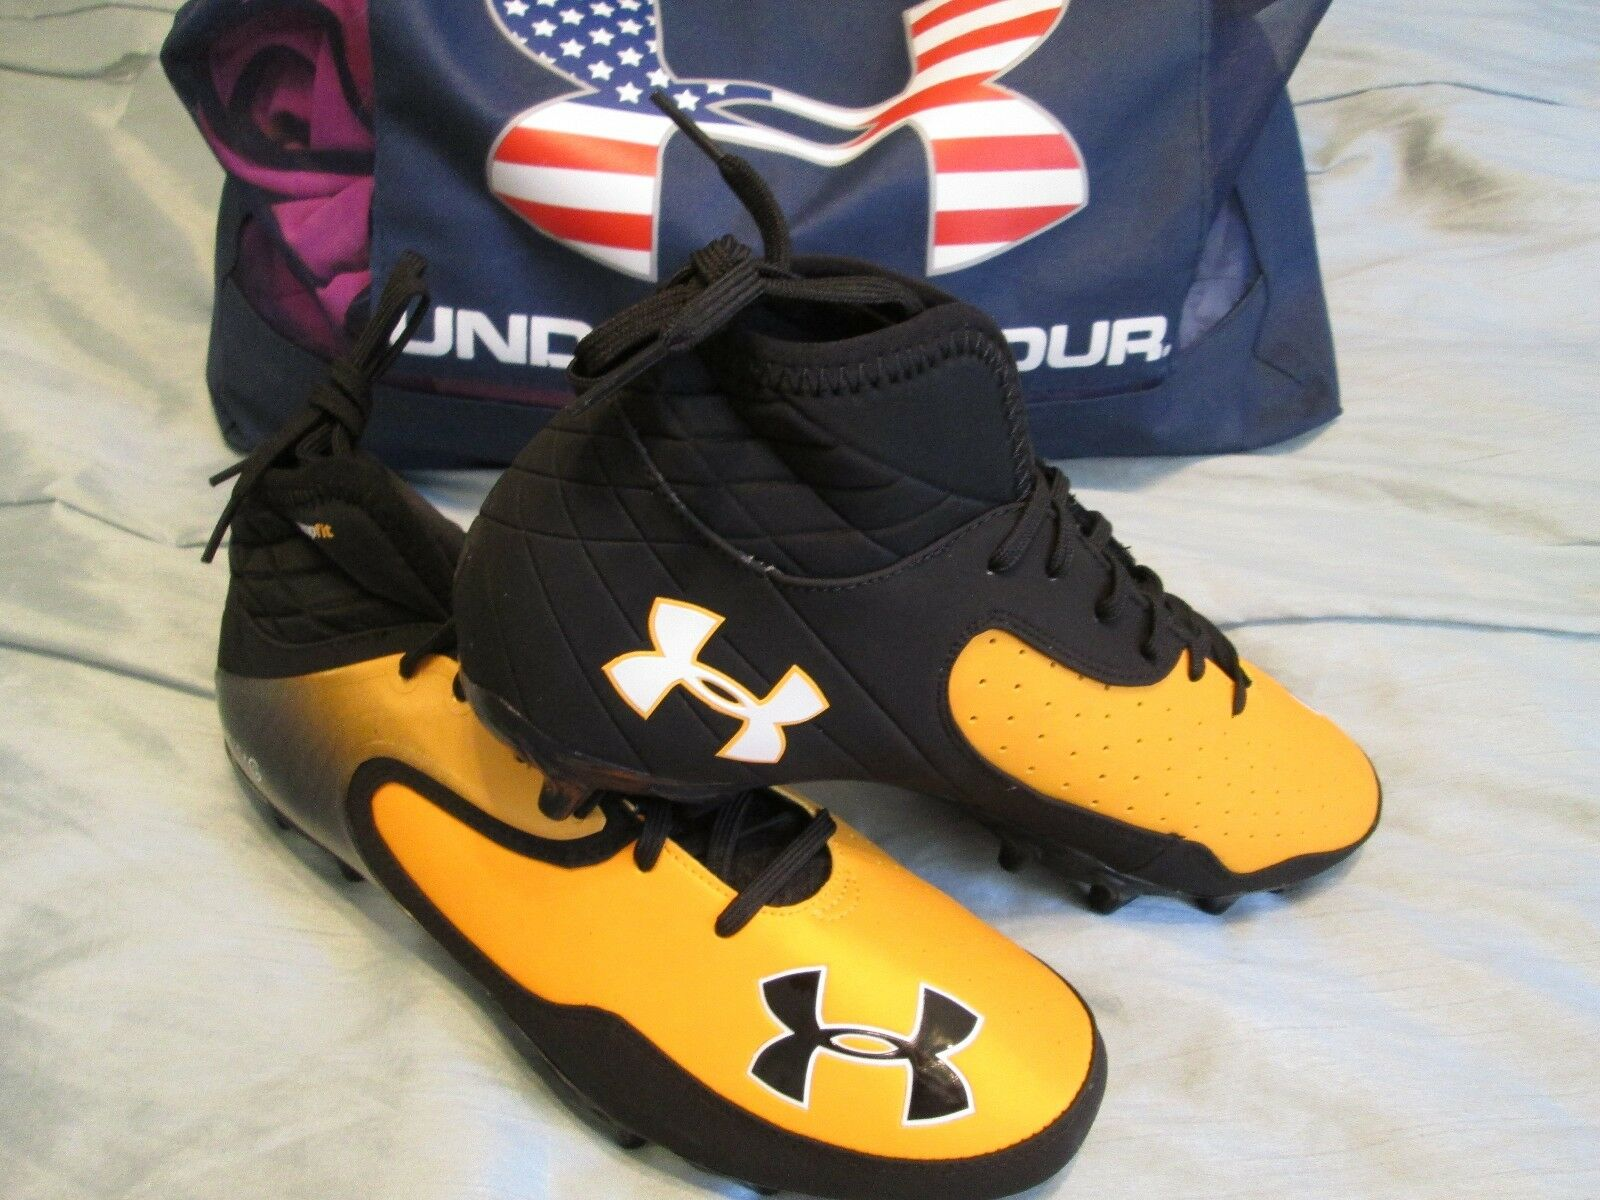 NEW Uomo UNDER ARMOUR Football Cleats Blk&Org/Gold NITRO ICON MID 11.5 FREE SHIP